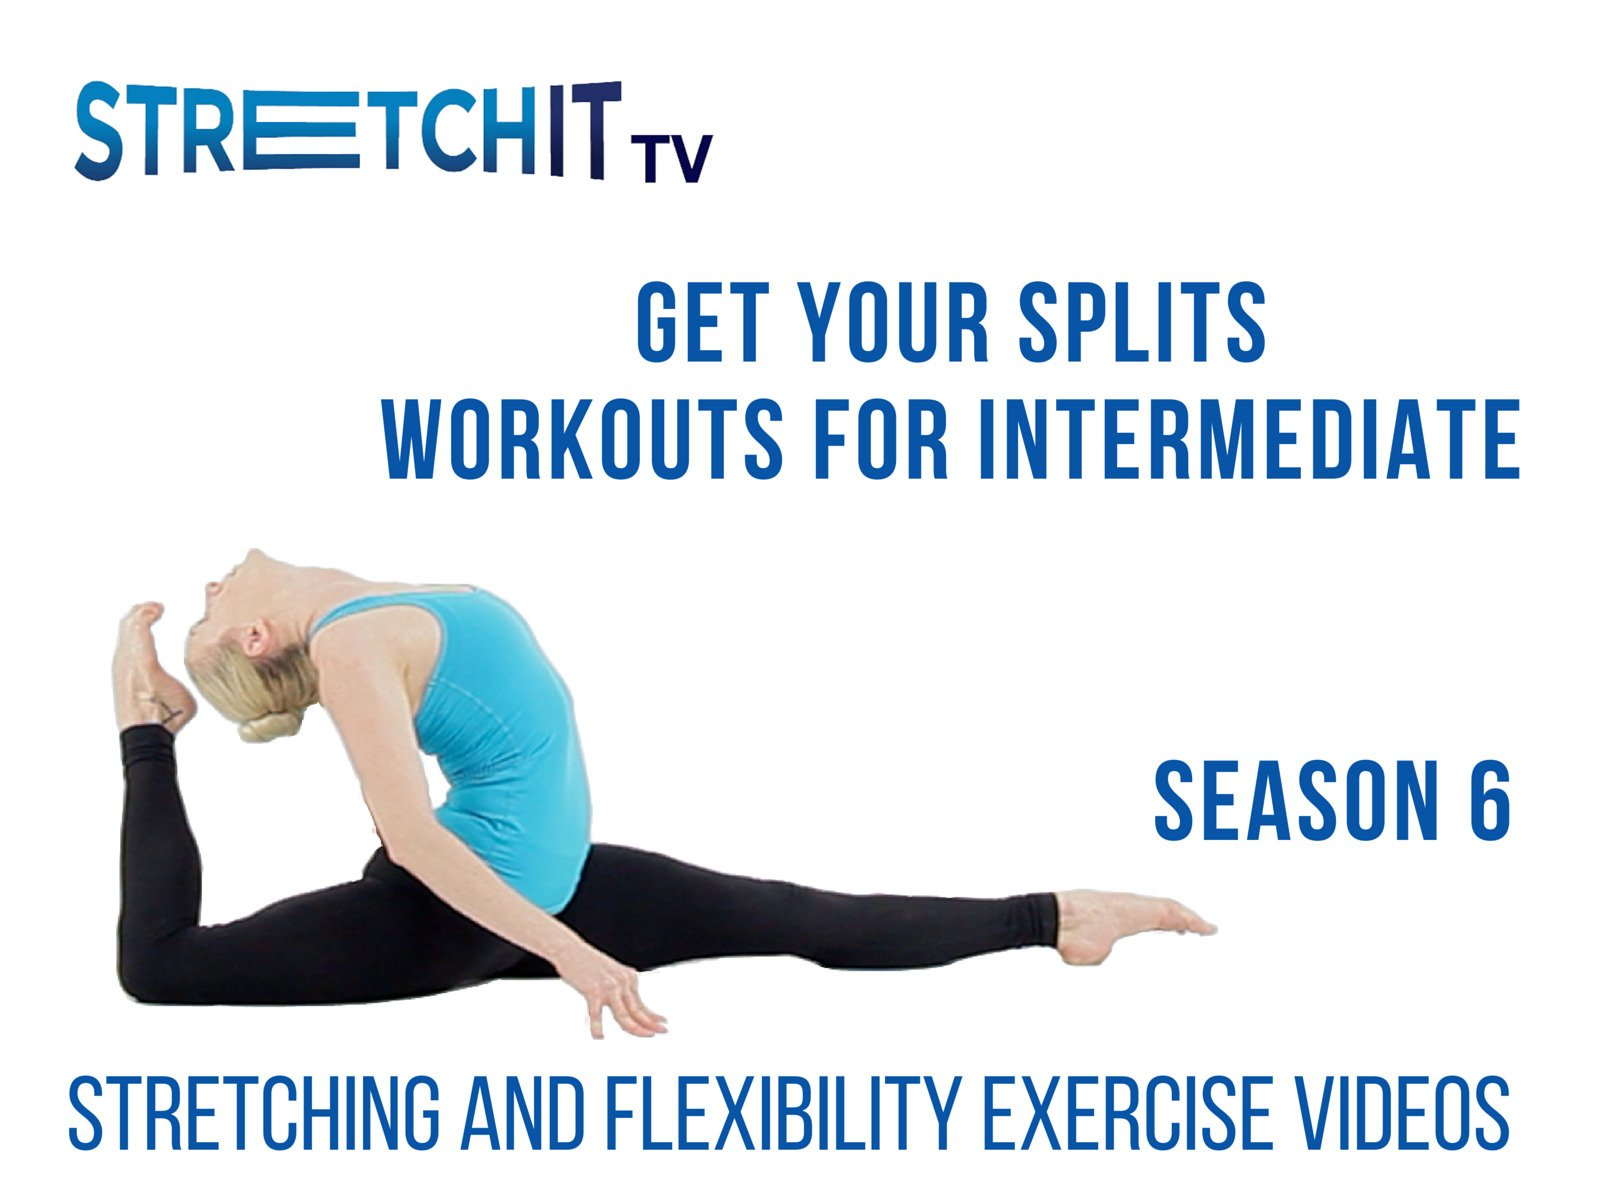 Amazon.com: Stretching and Flexibility Exercise Videos ...